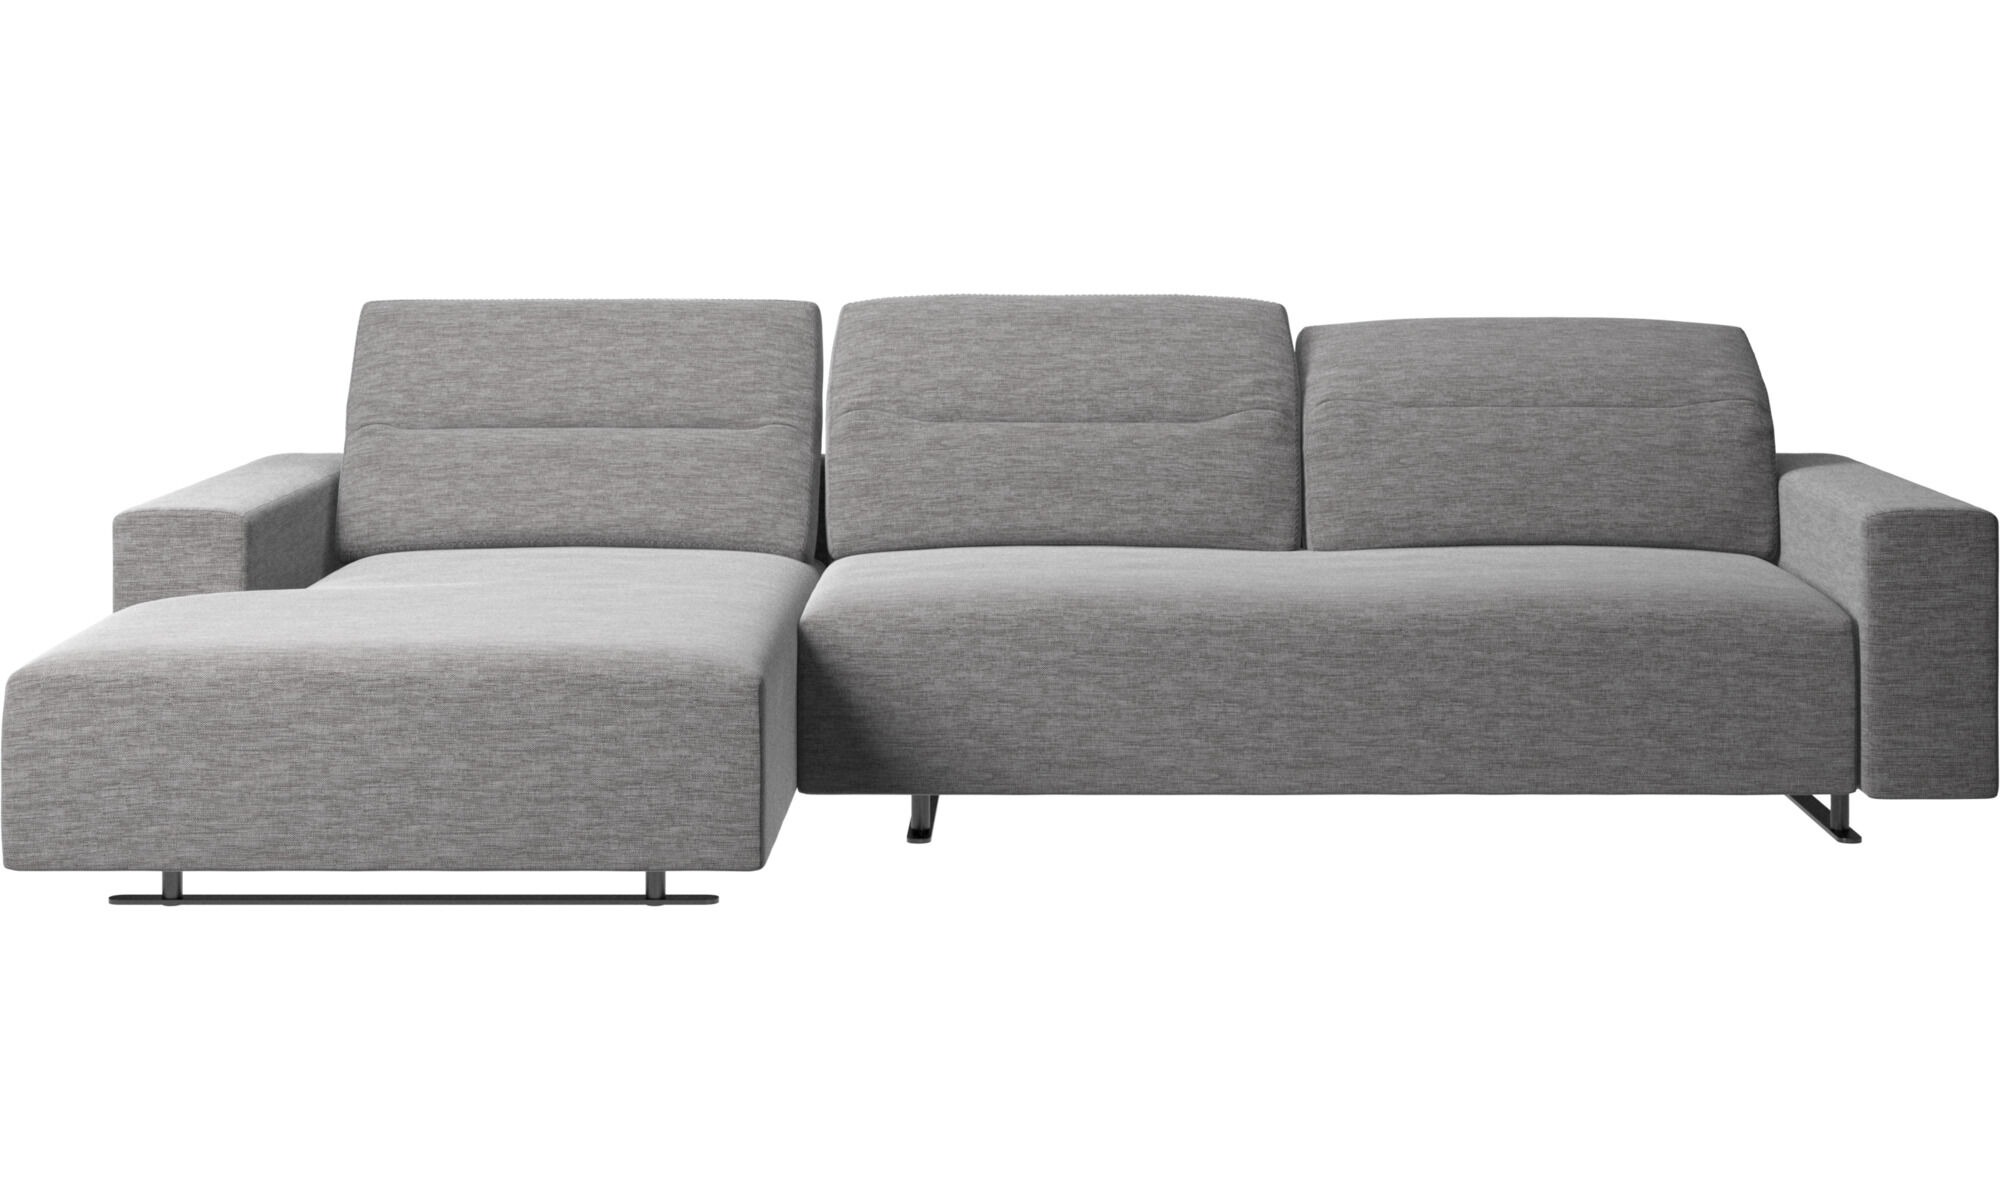 Chaise Lounge Sofas   Hampton Sofa With Adjustable Back And Resting Unit  Left Side   Gray